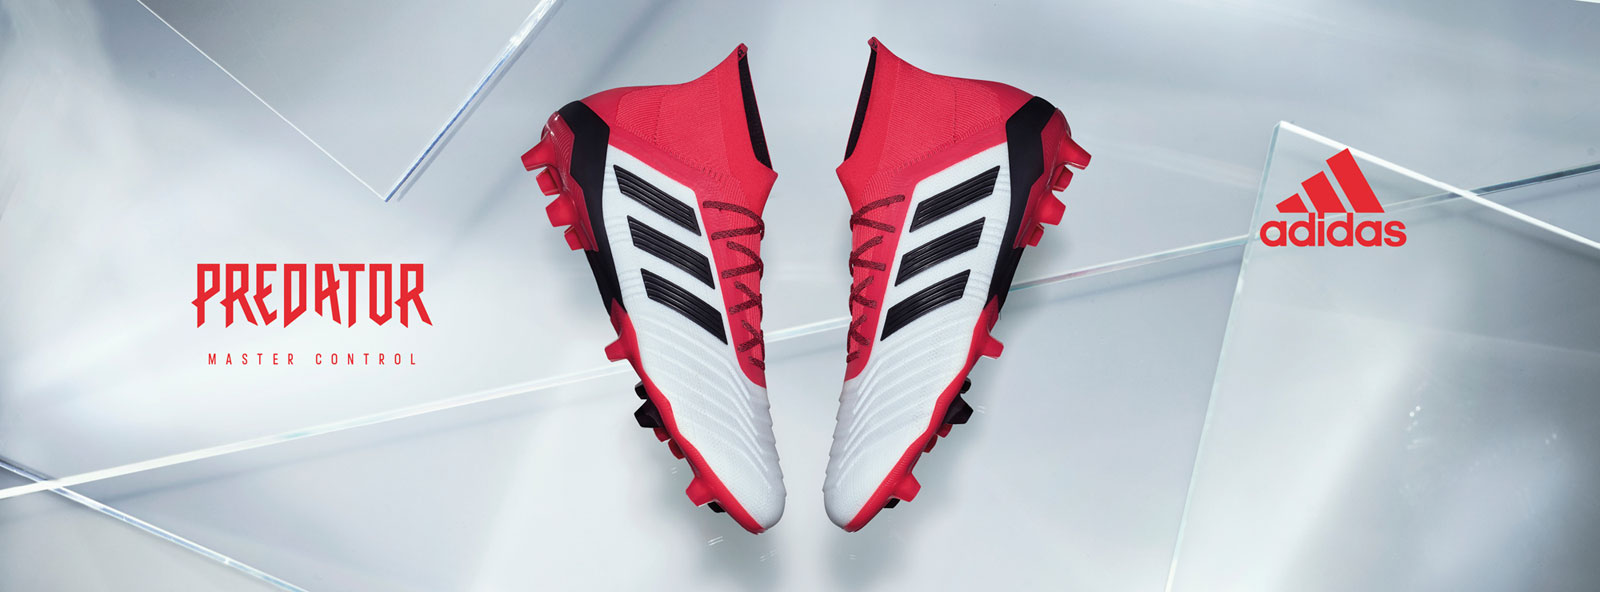 adidas Predator 18 Cold Blooded Pack kaufen